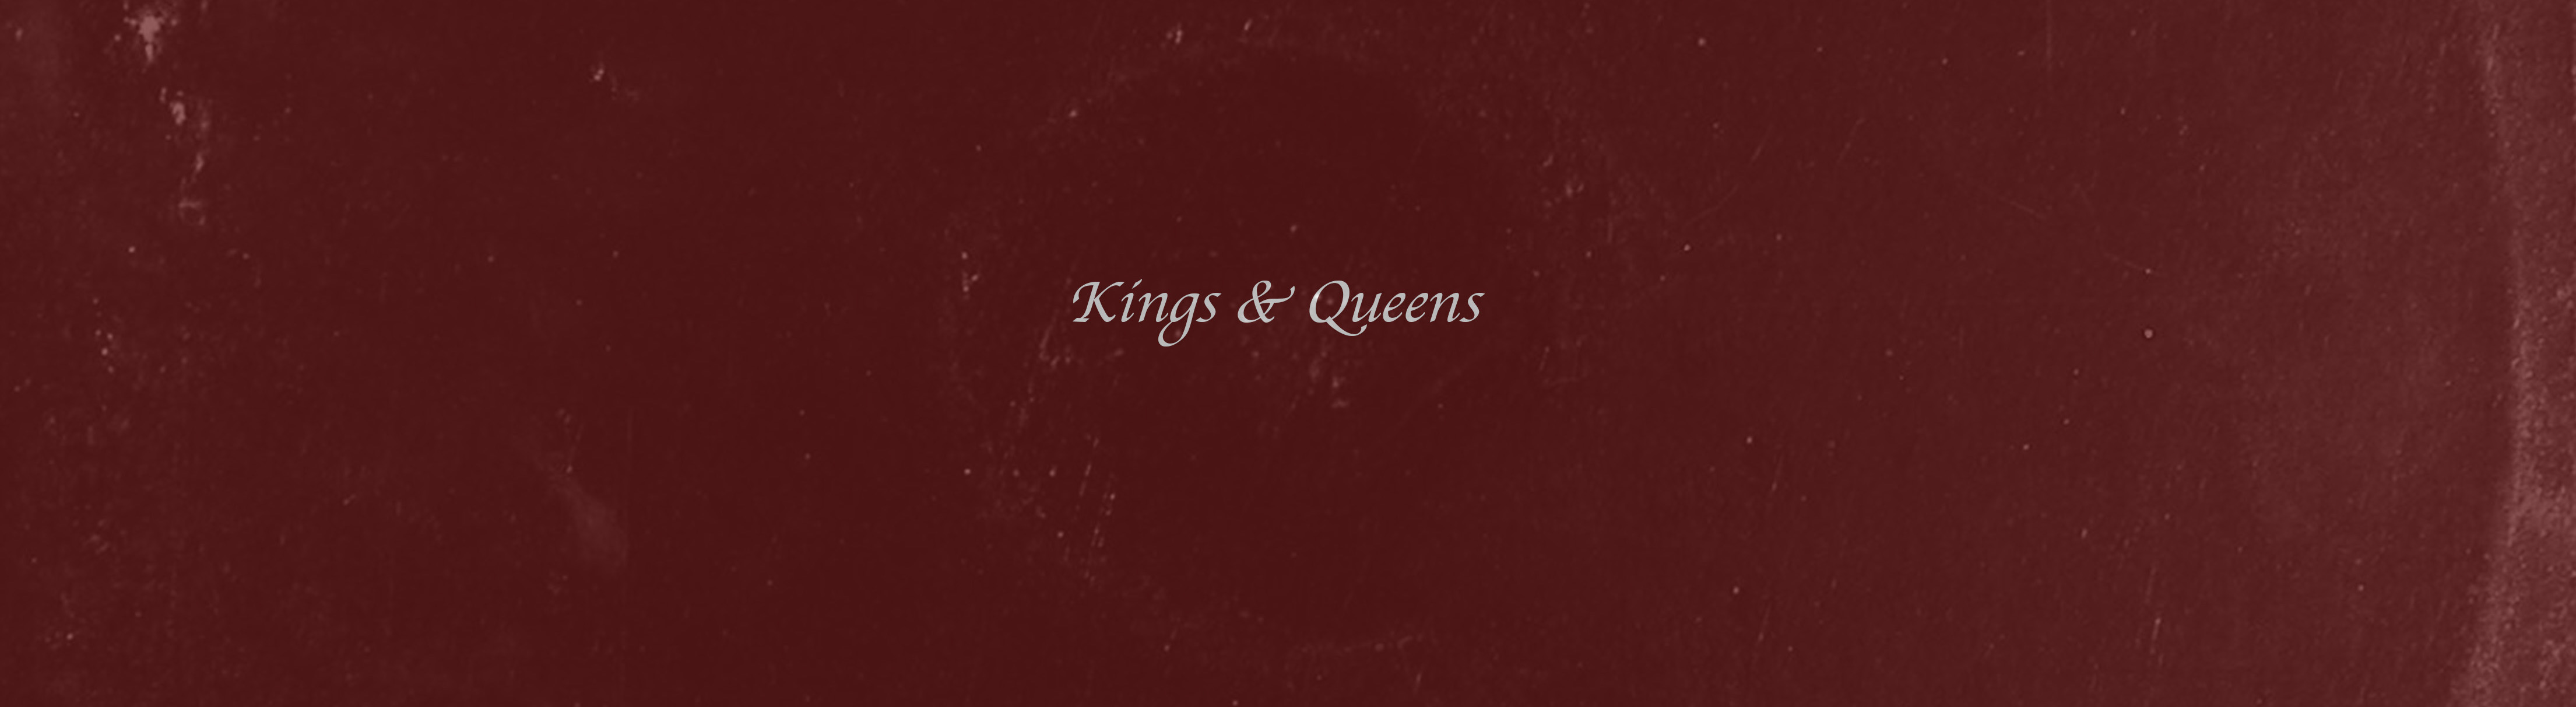 MOST Gets Regal With 'Kings & Queens'